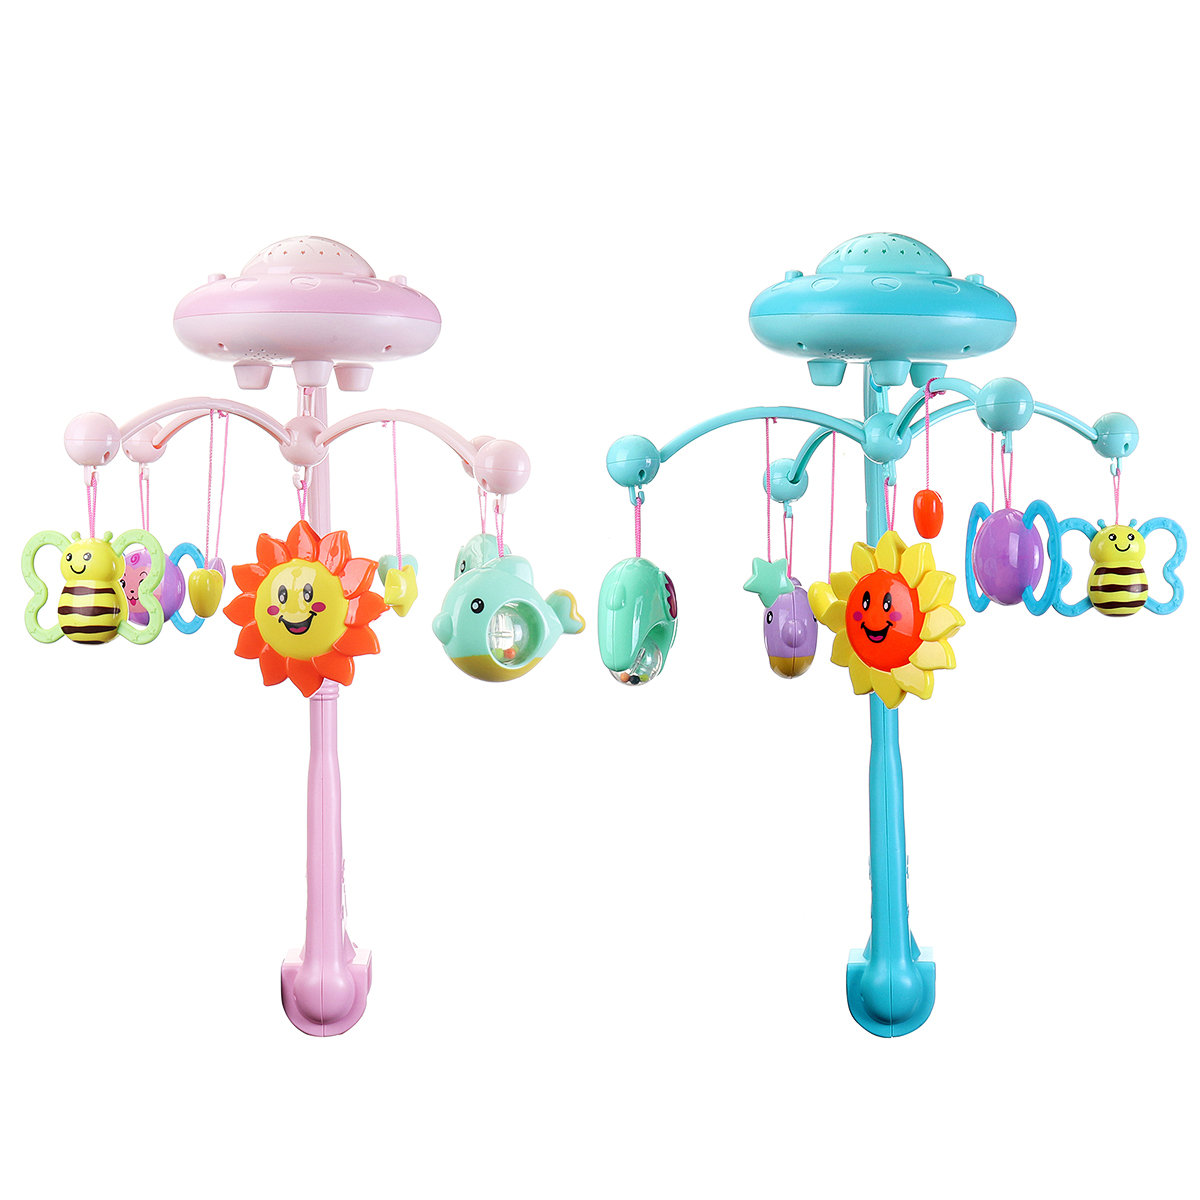 0-12 Months Crib Mobile Musical Bed Bell With Animal Rattles Projection Cartoon Early Learning Toys